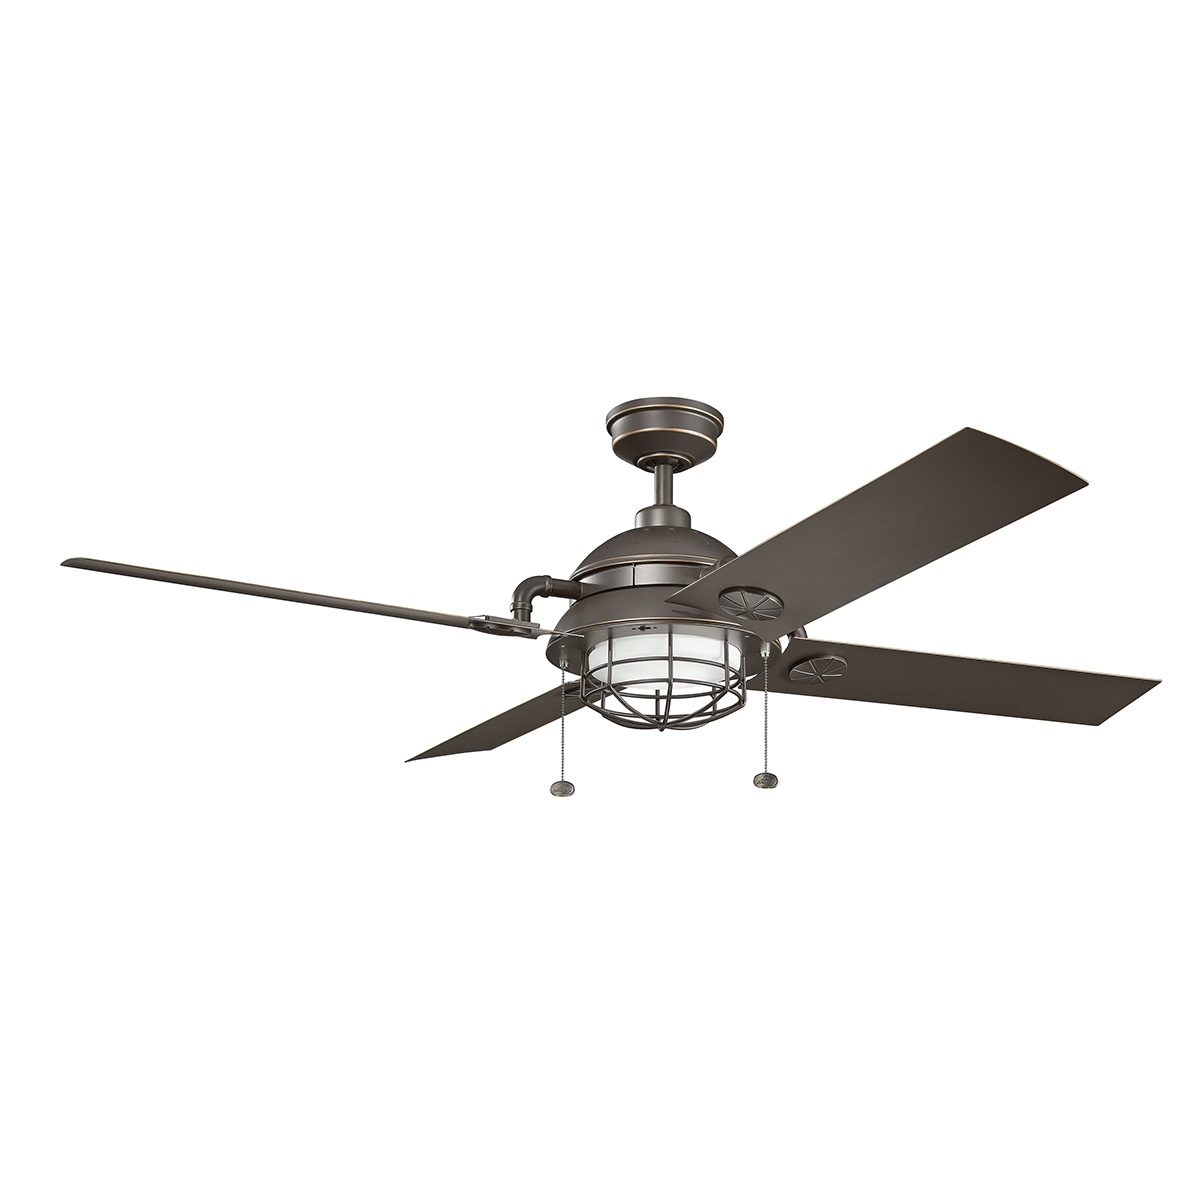 65 inchCeiling Fan from the Maor collection by Kichler 310136OZ